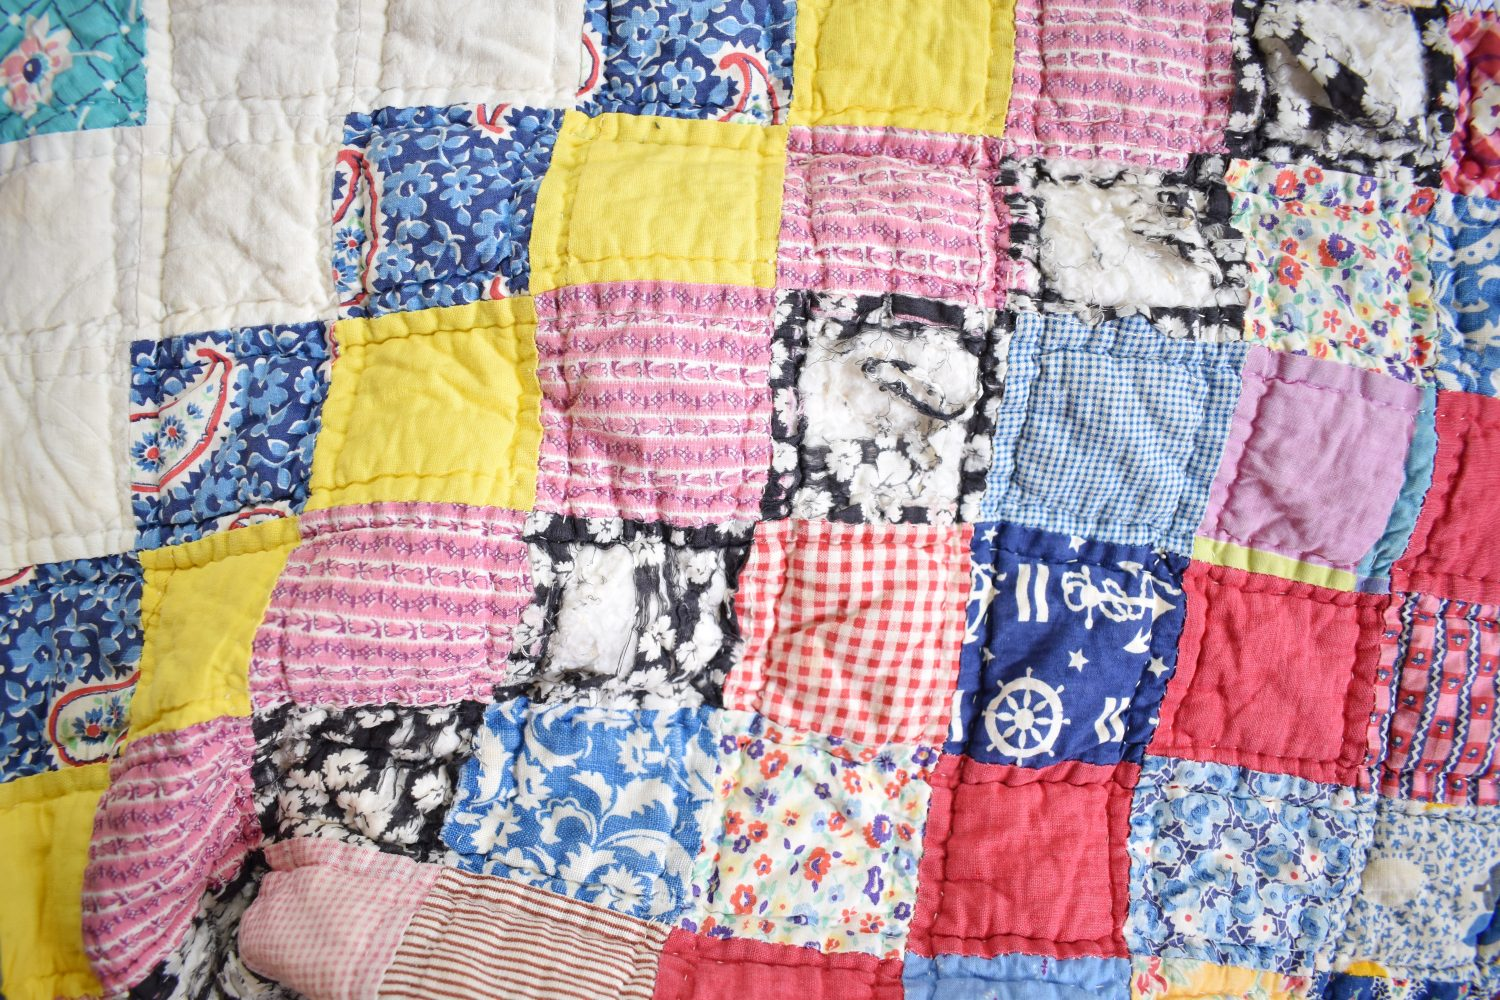 Fabric tears that need mending on a vintage quilt